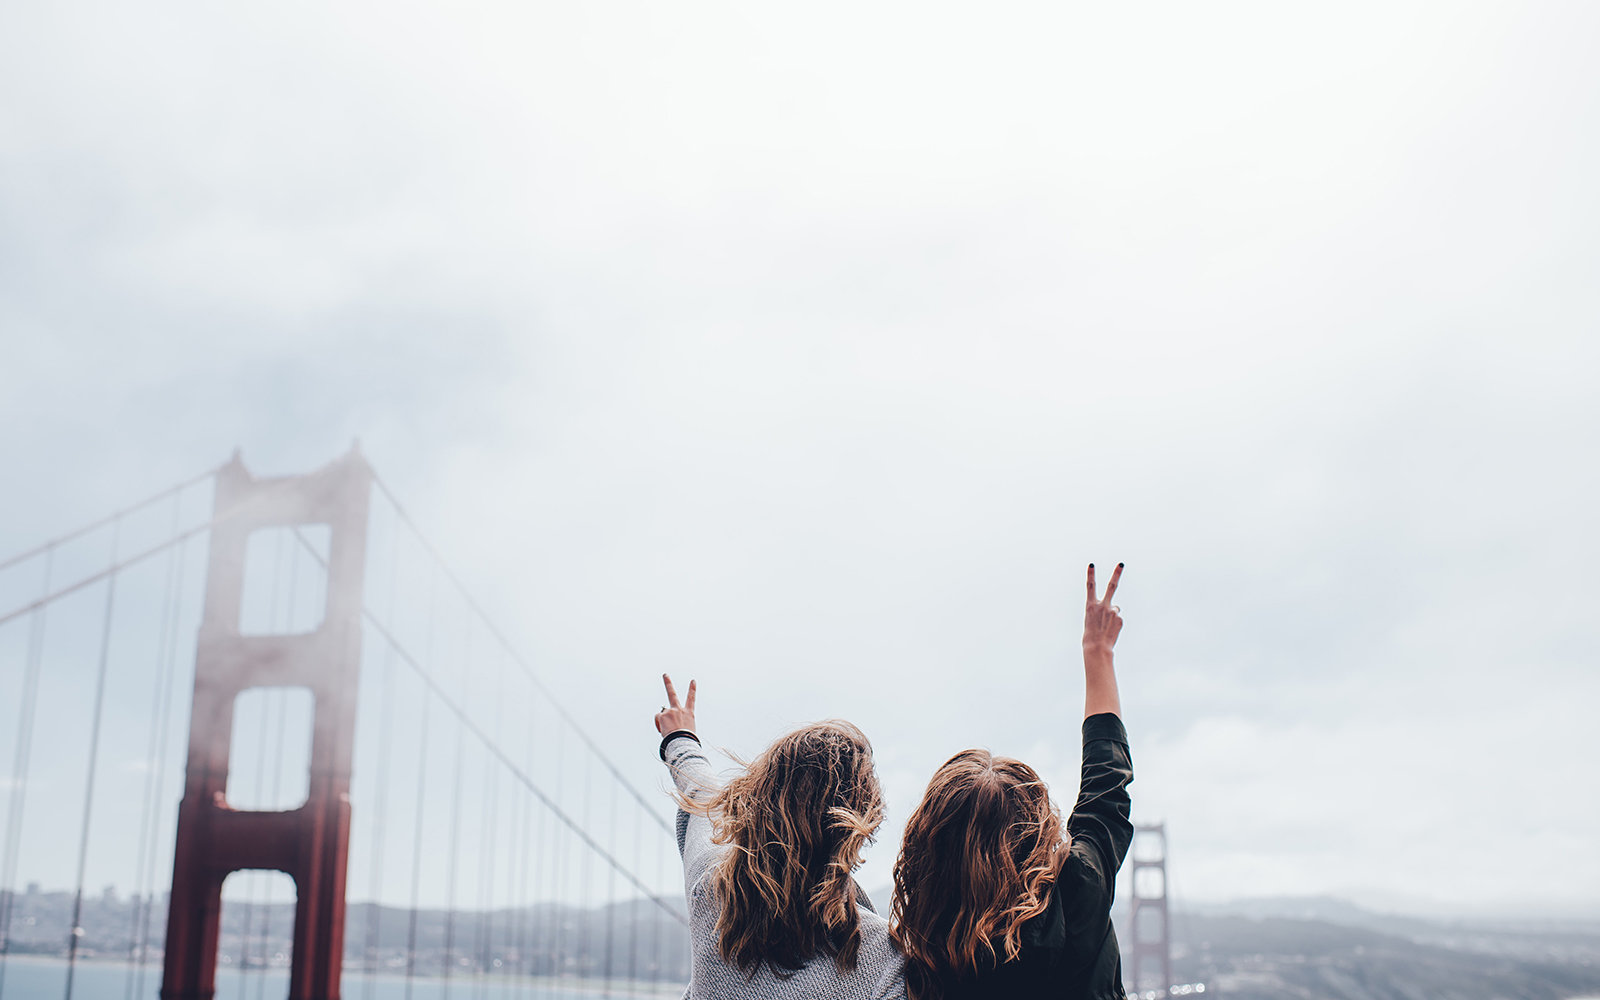 18 Ways to Meet People When Traveling Solo